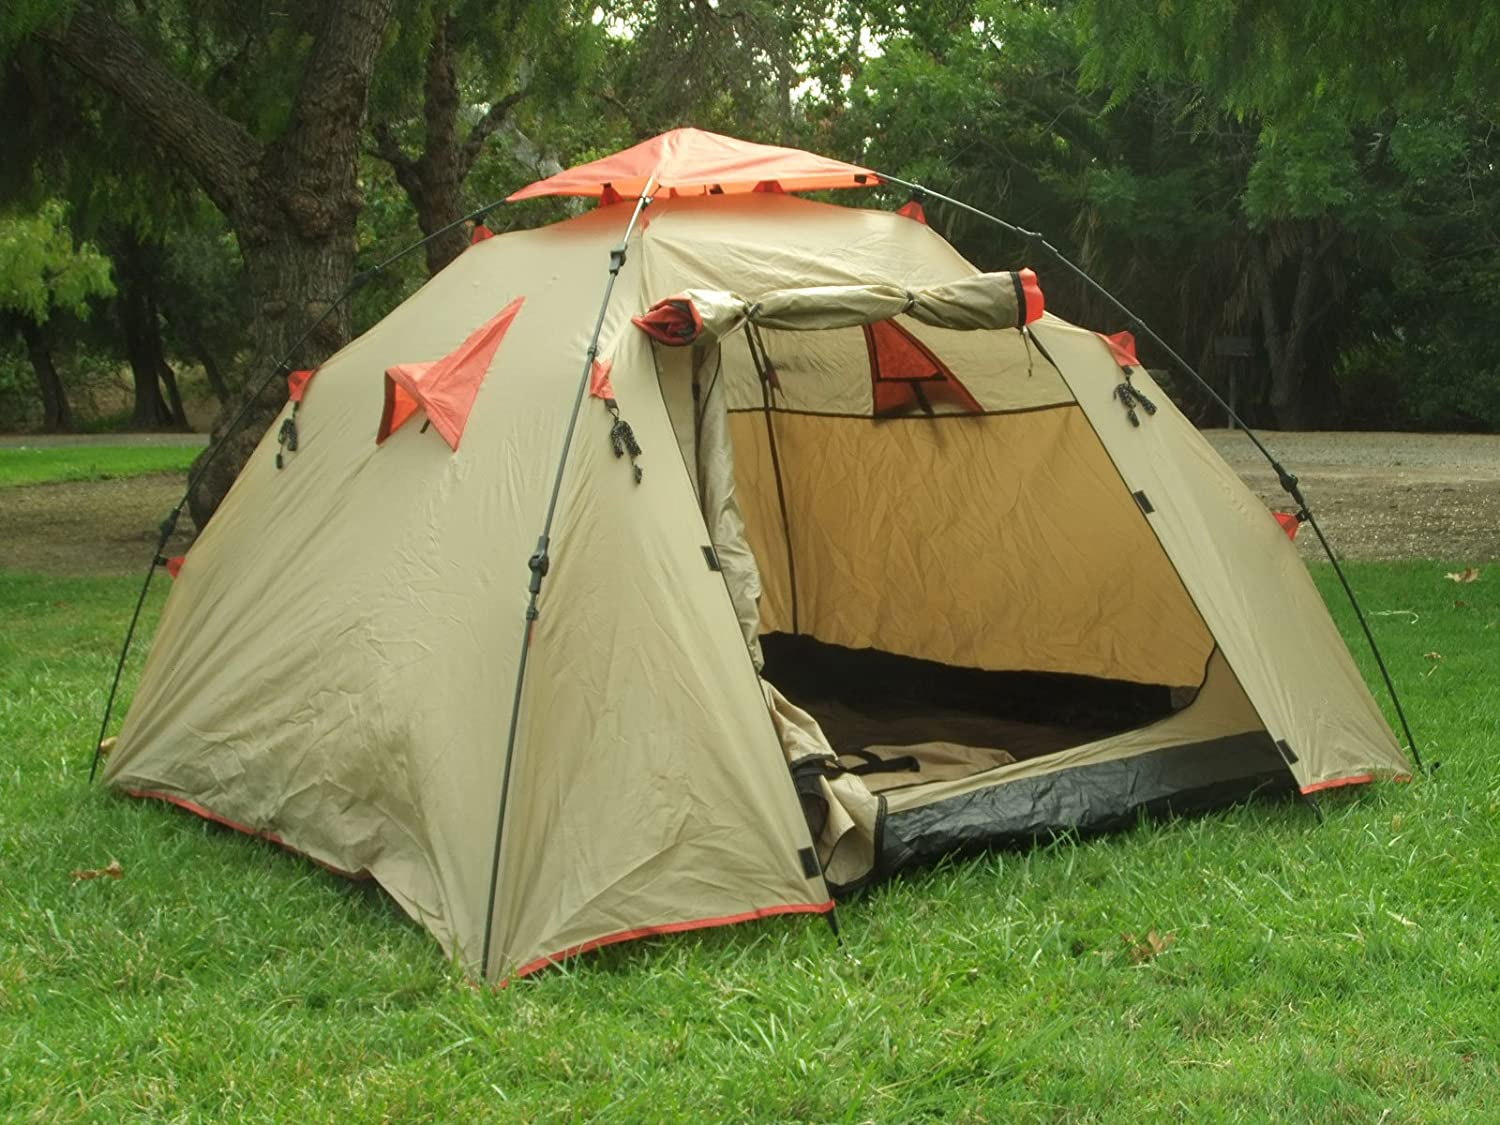 Amazon.com  Genji Sports Instant C&ing Tent (3 Person) Large Light Brown  Sports u0026 Outdoors & Amazon.com : Genji Sports Instant Camping Tent (3 Person) Large ...